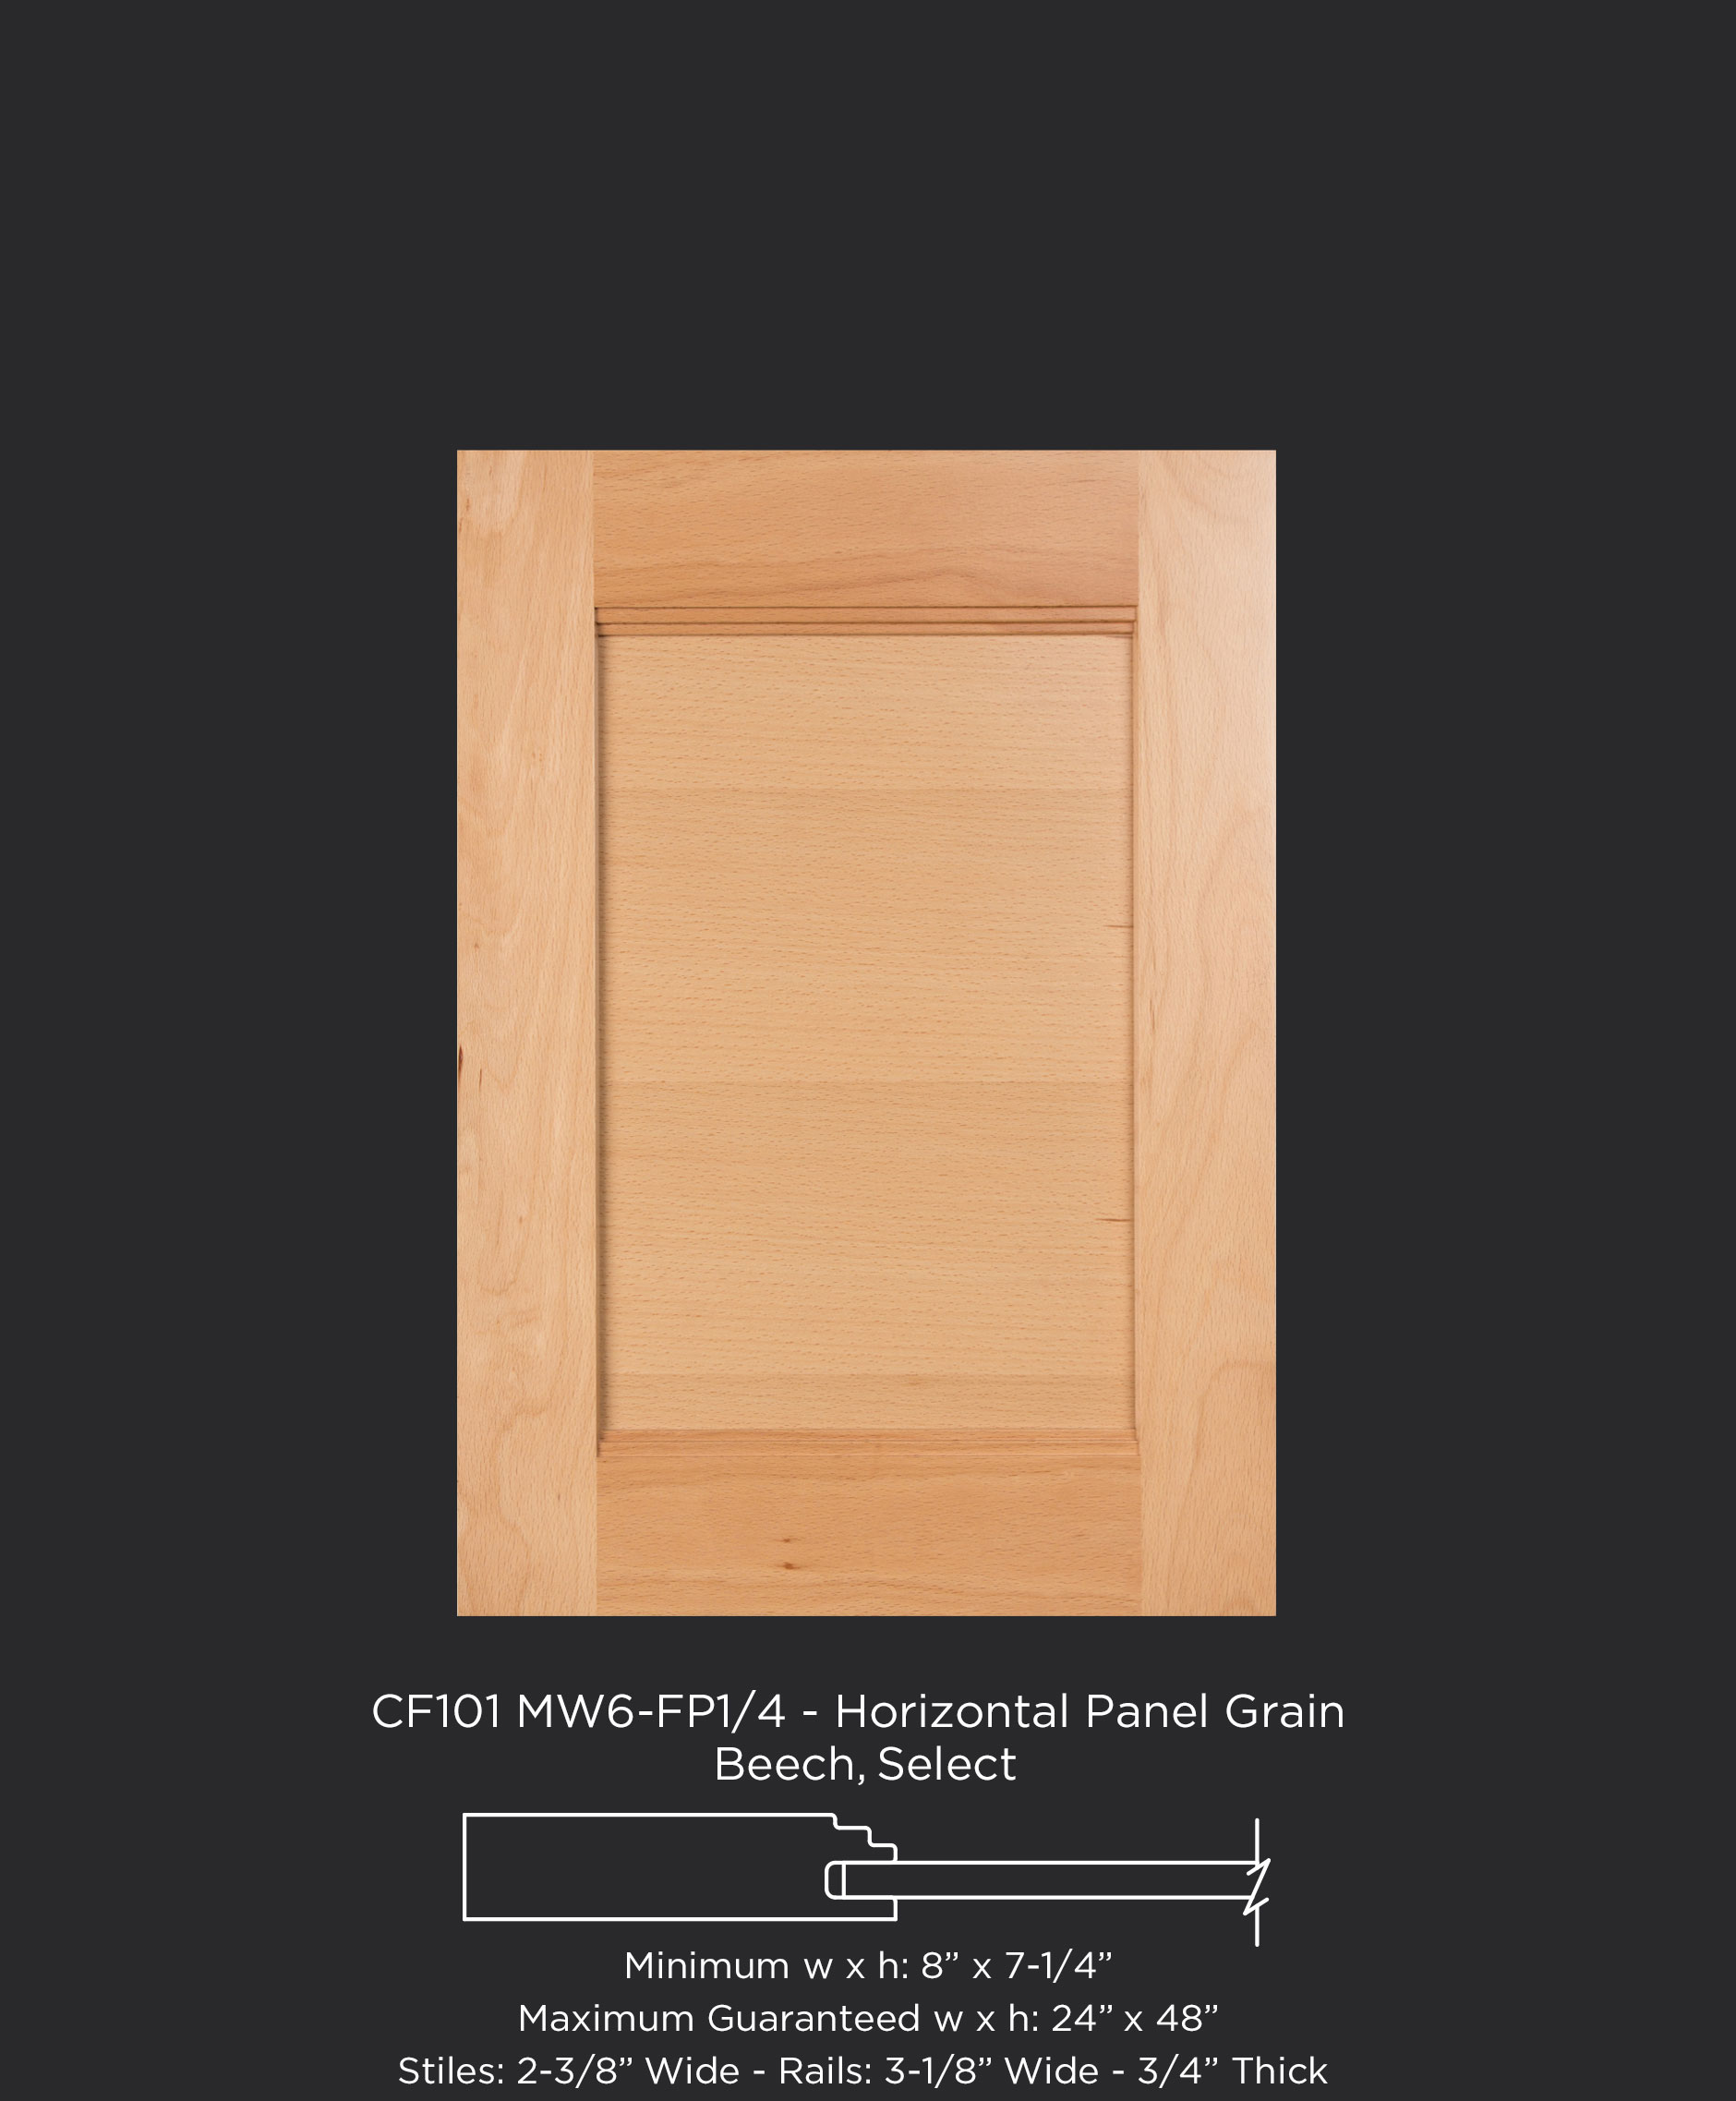 Cf101 mw6 fp1 4 beech select horizontal grain for 6 horizontal panel doors